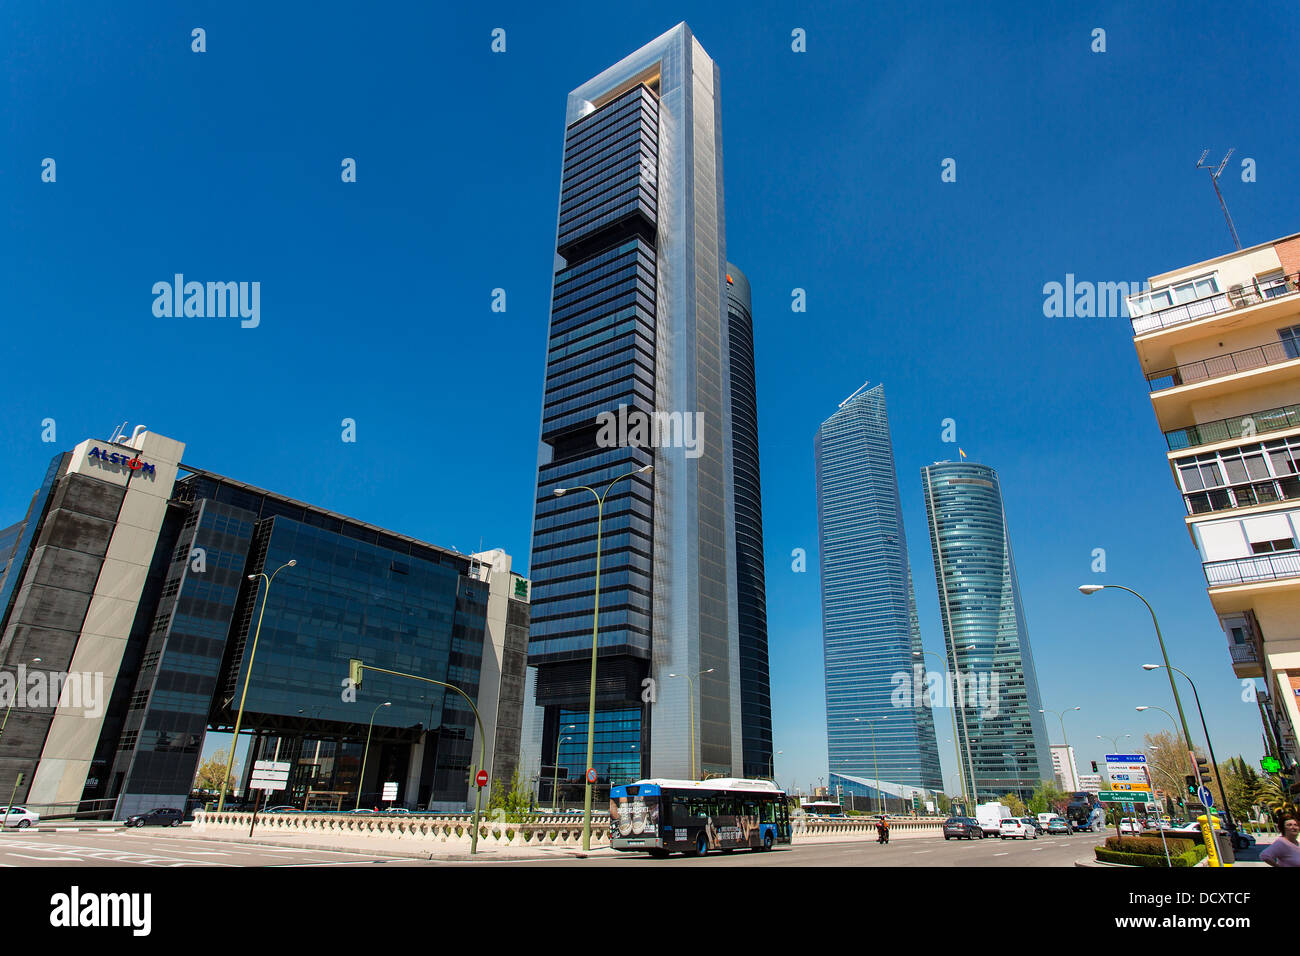 Madrid, Financial District Stockbild